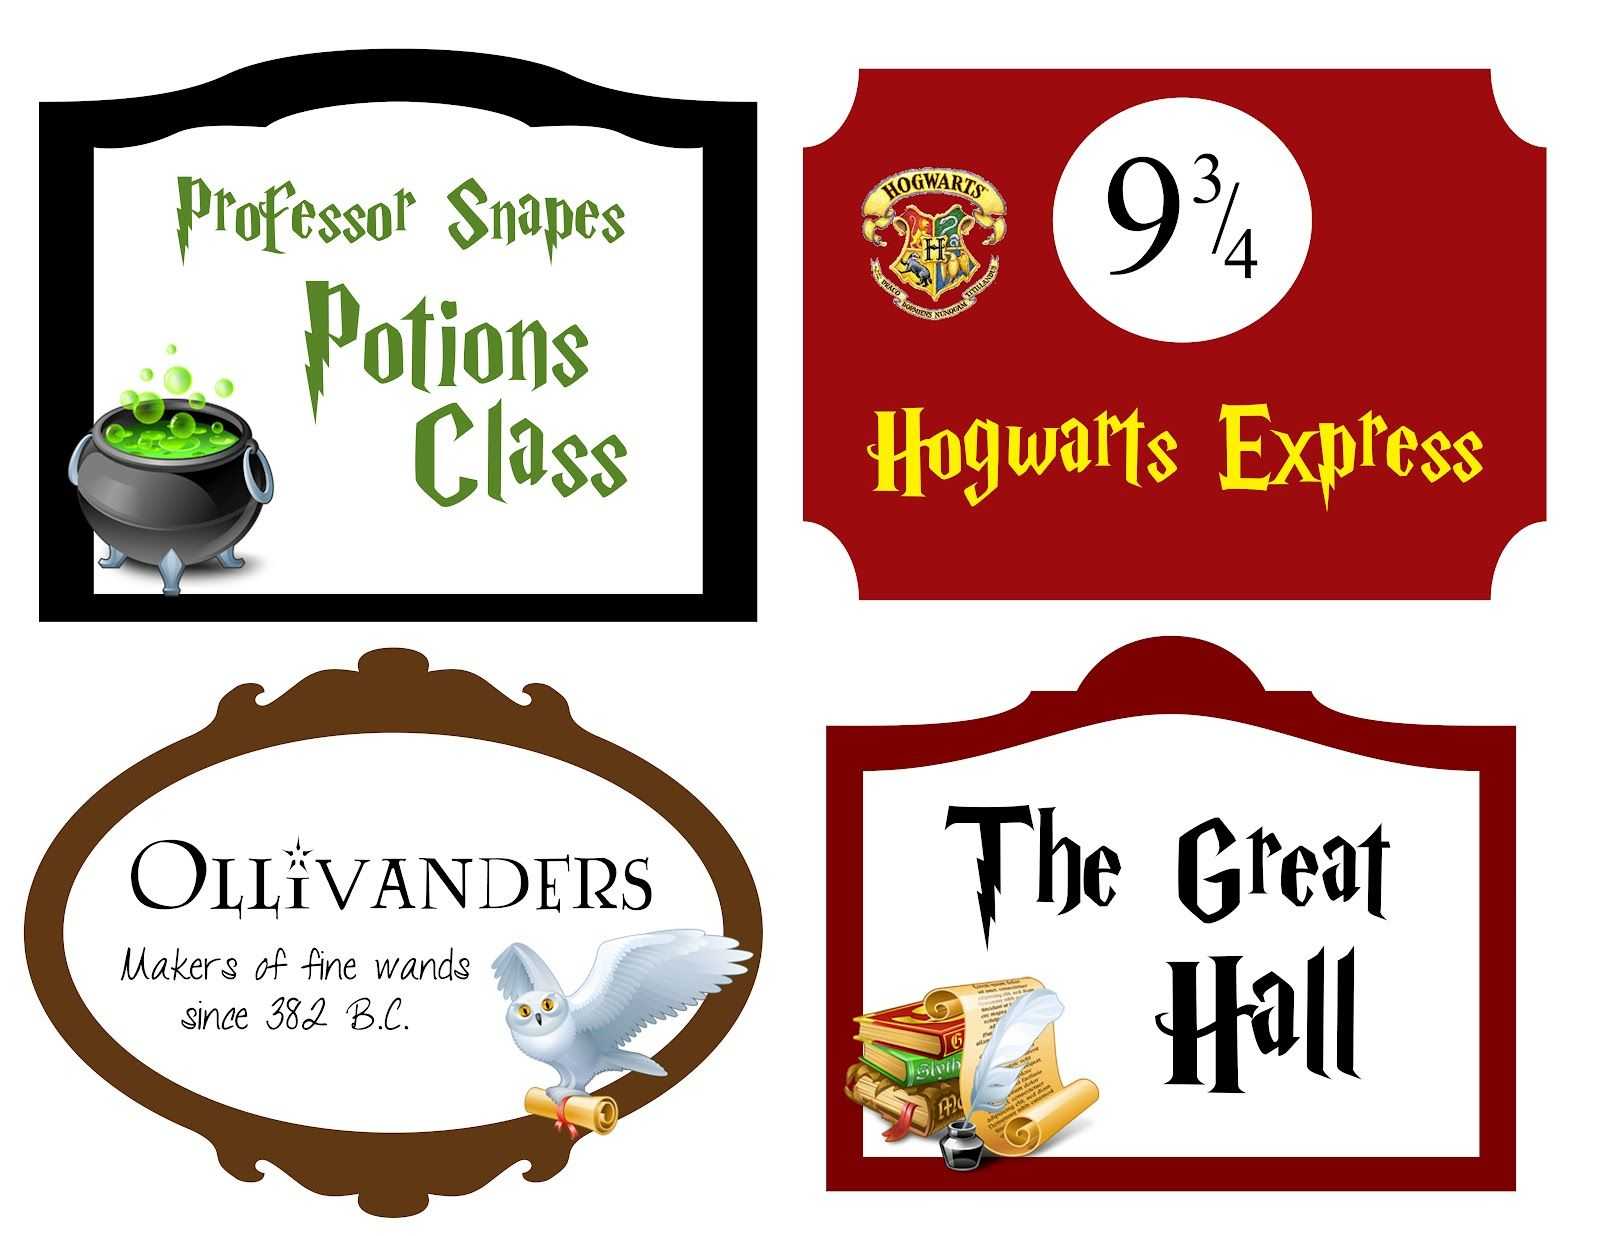 Harry Potter Party Printables My Cotton Creations Family Life Harry Potter Party Free Printabl Harry Potter Sign Harry Potter Theme Party Harry Potter Free